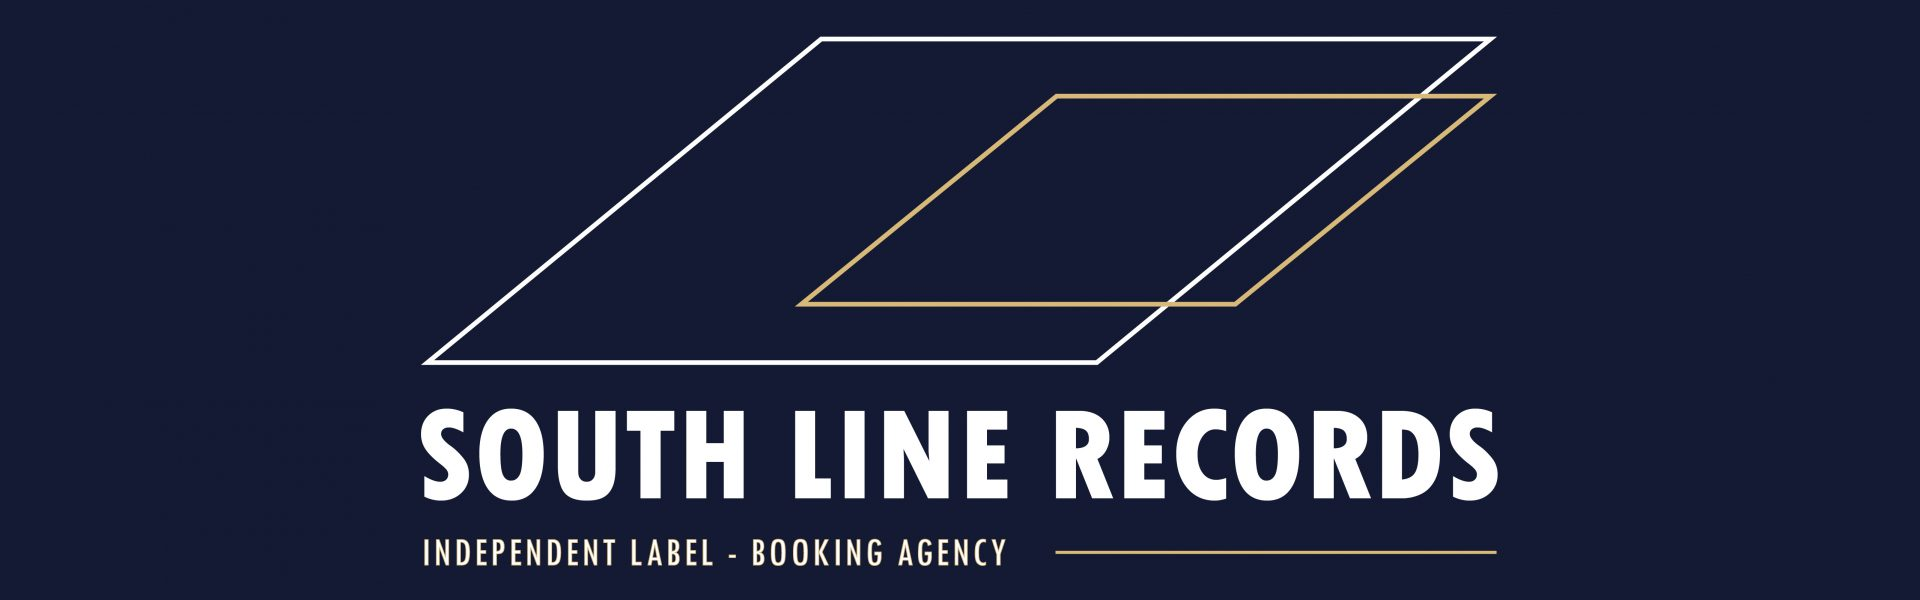 South Line Records